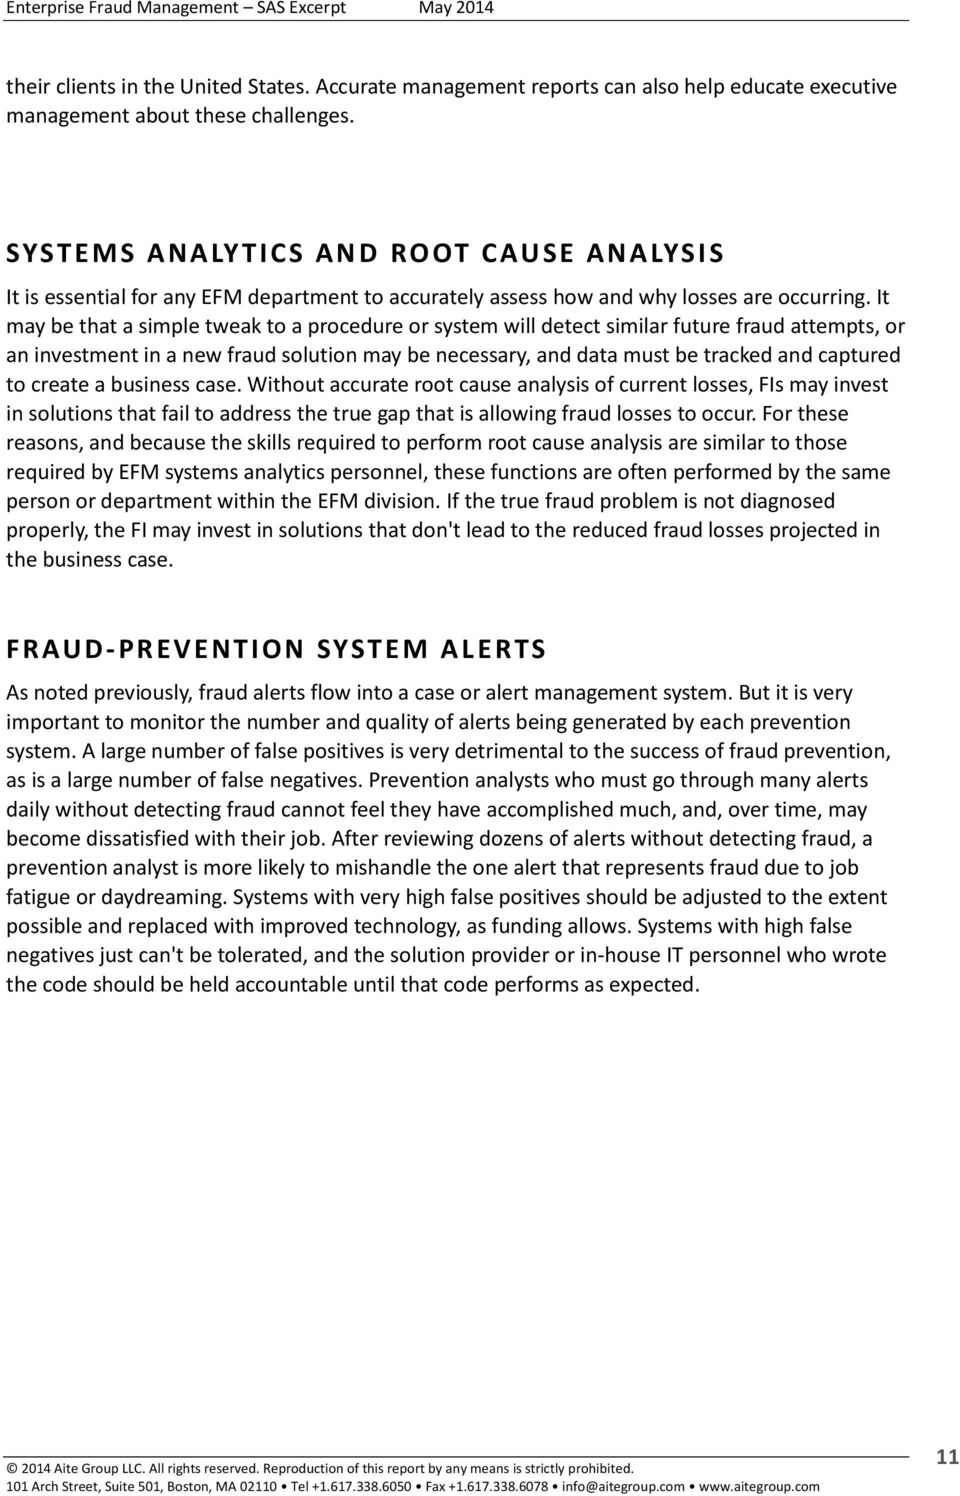 It may be that a simple tweak to a procedure or system will detect similar future fraud attempts, or an investment in a new fraud solution may be necessary, and data must be tracked and captured to